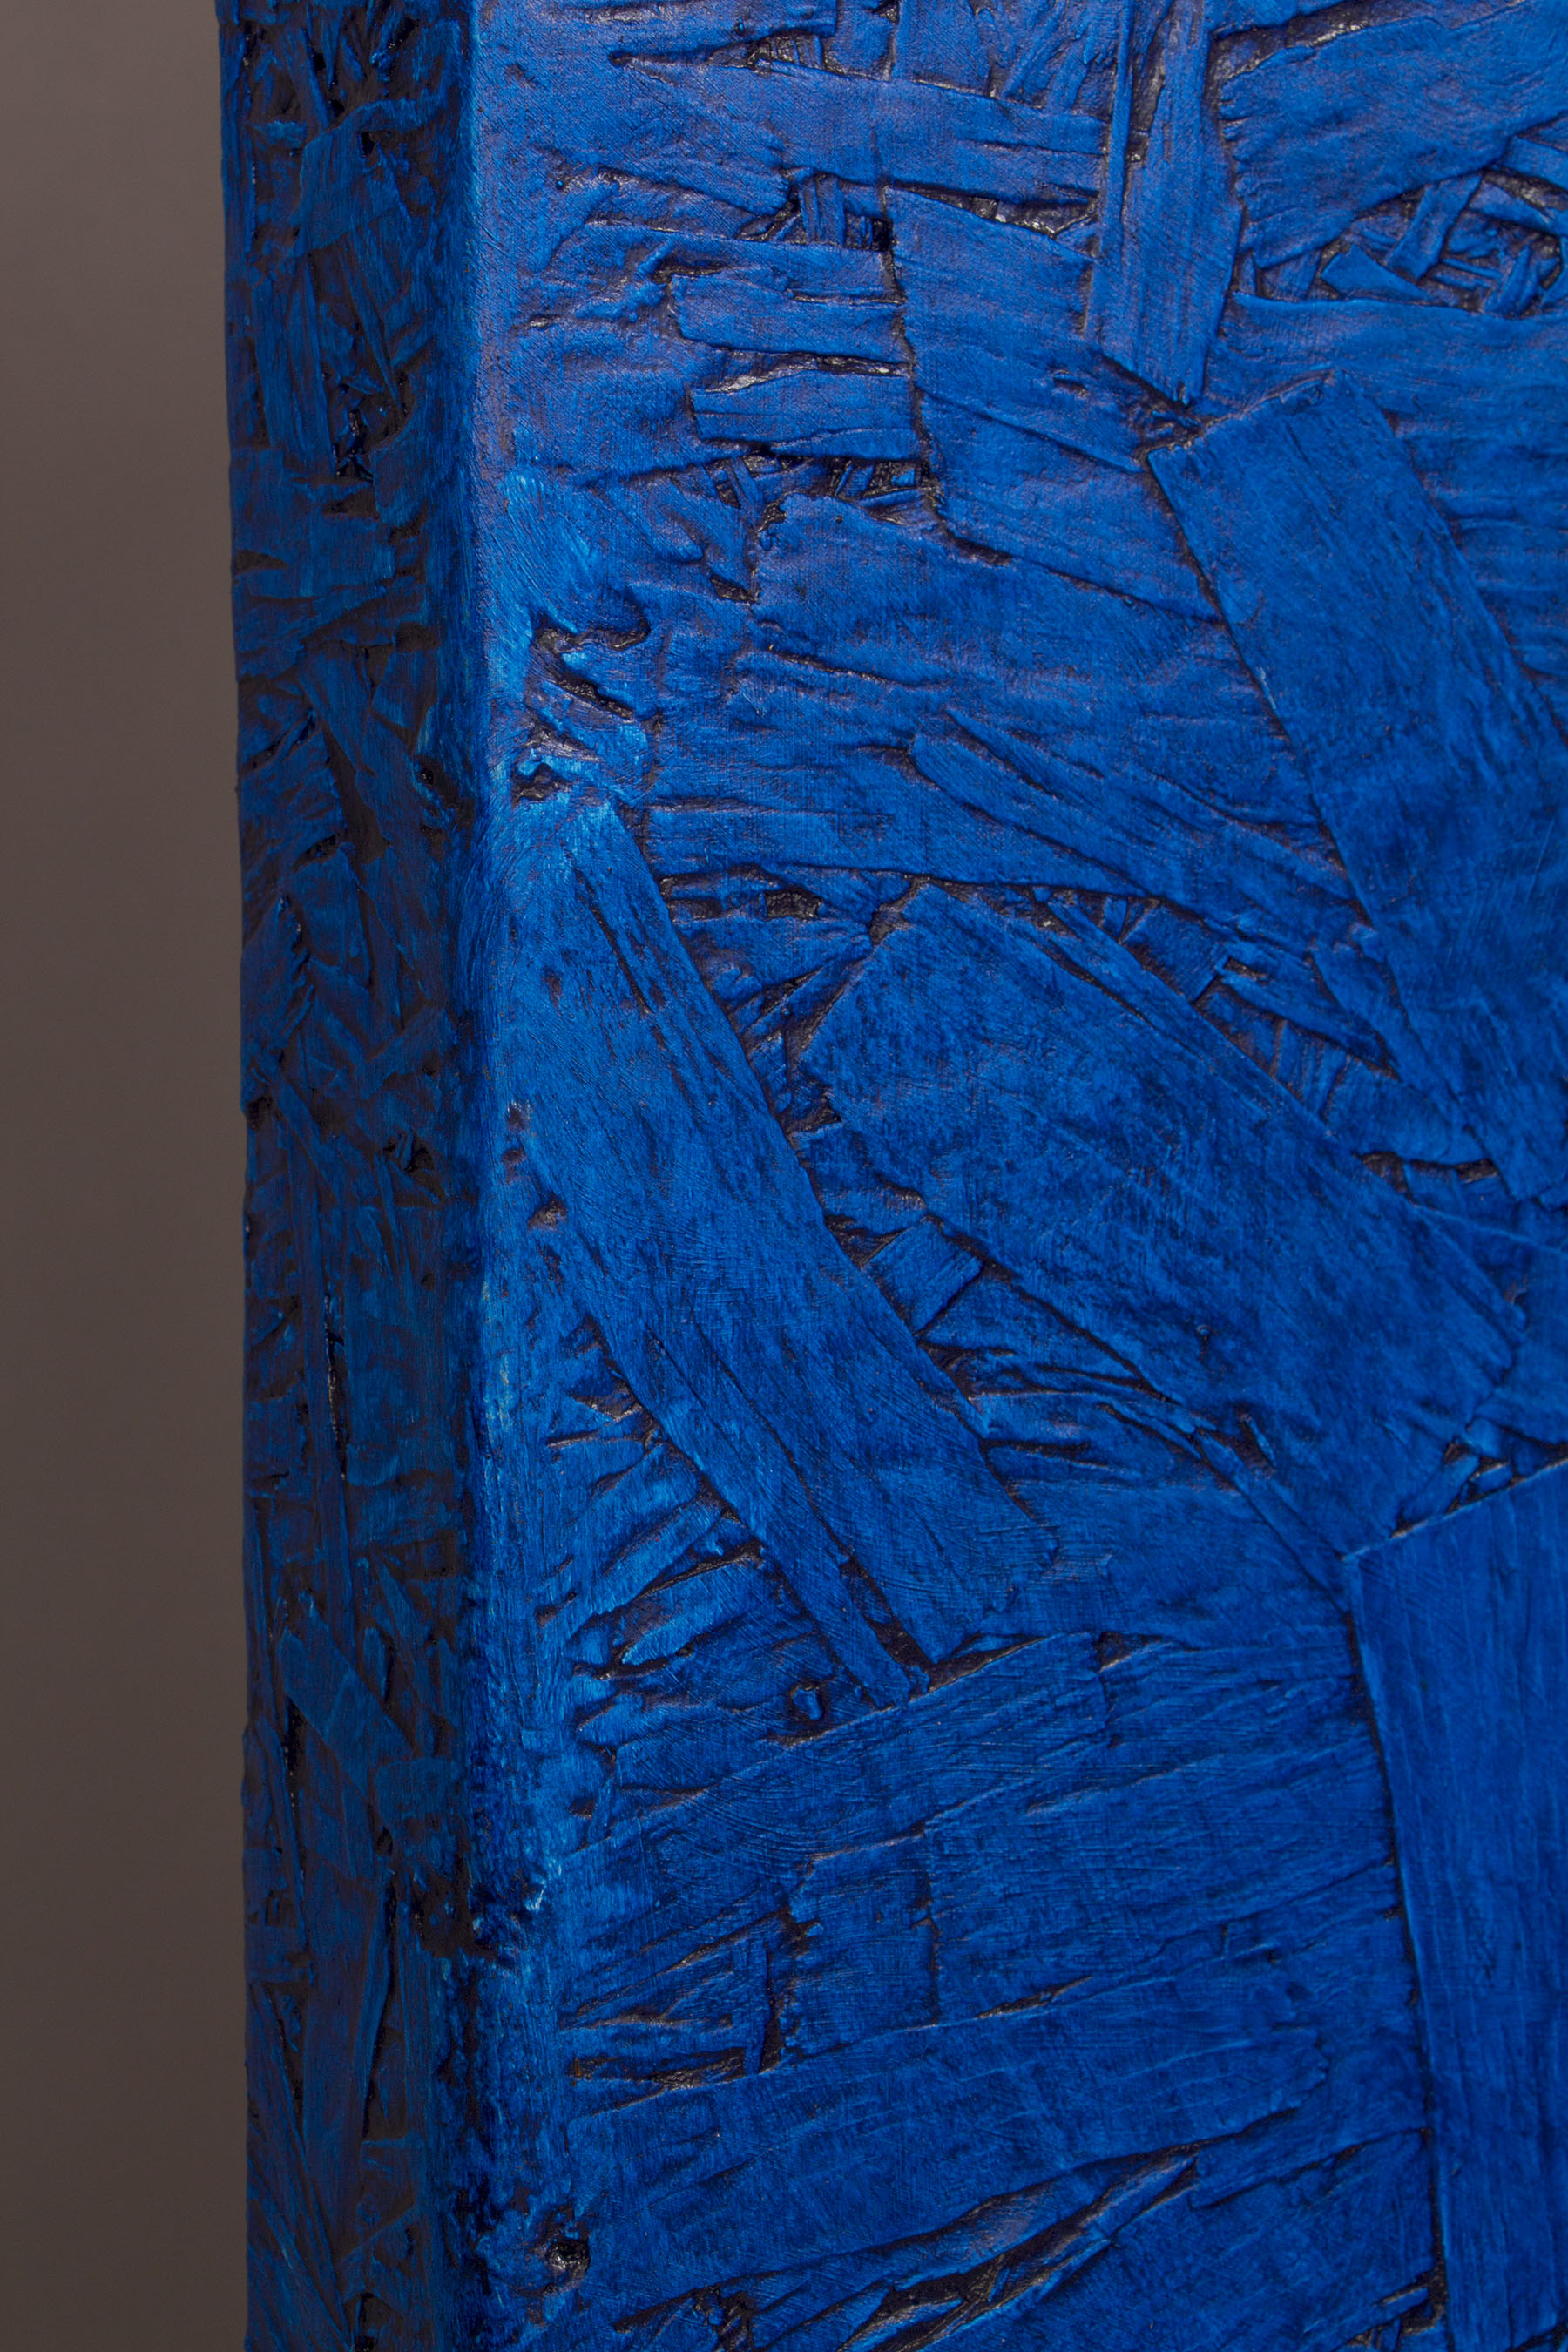 Blue paint on wood, detailed side view